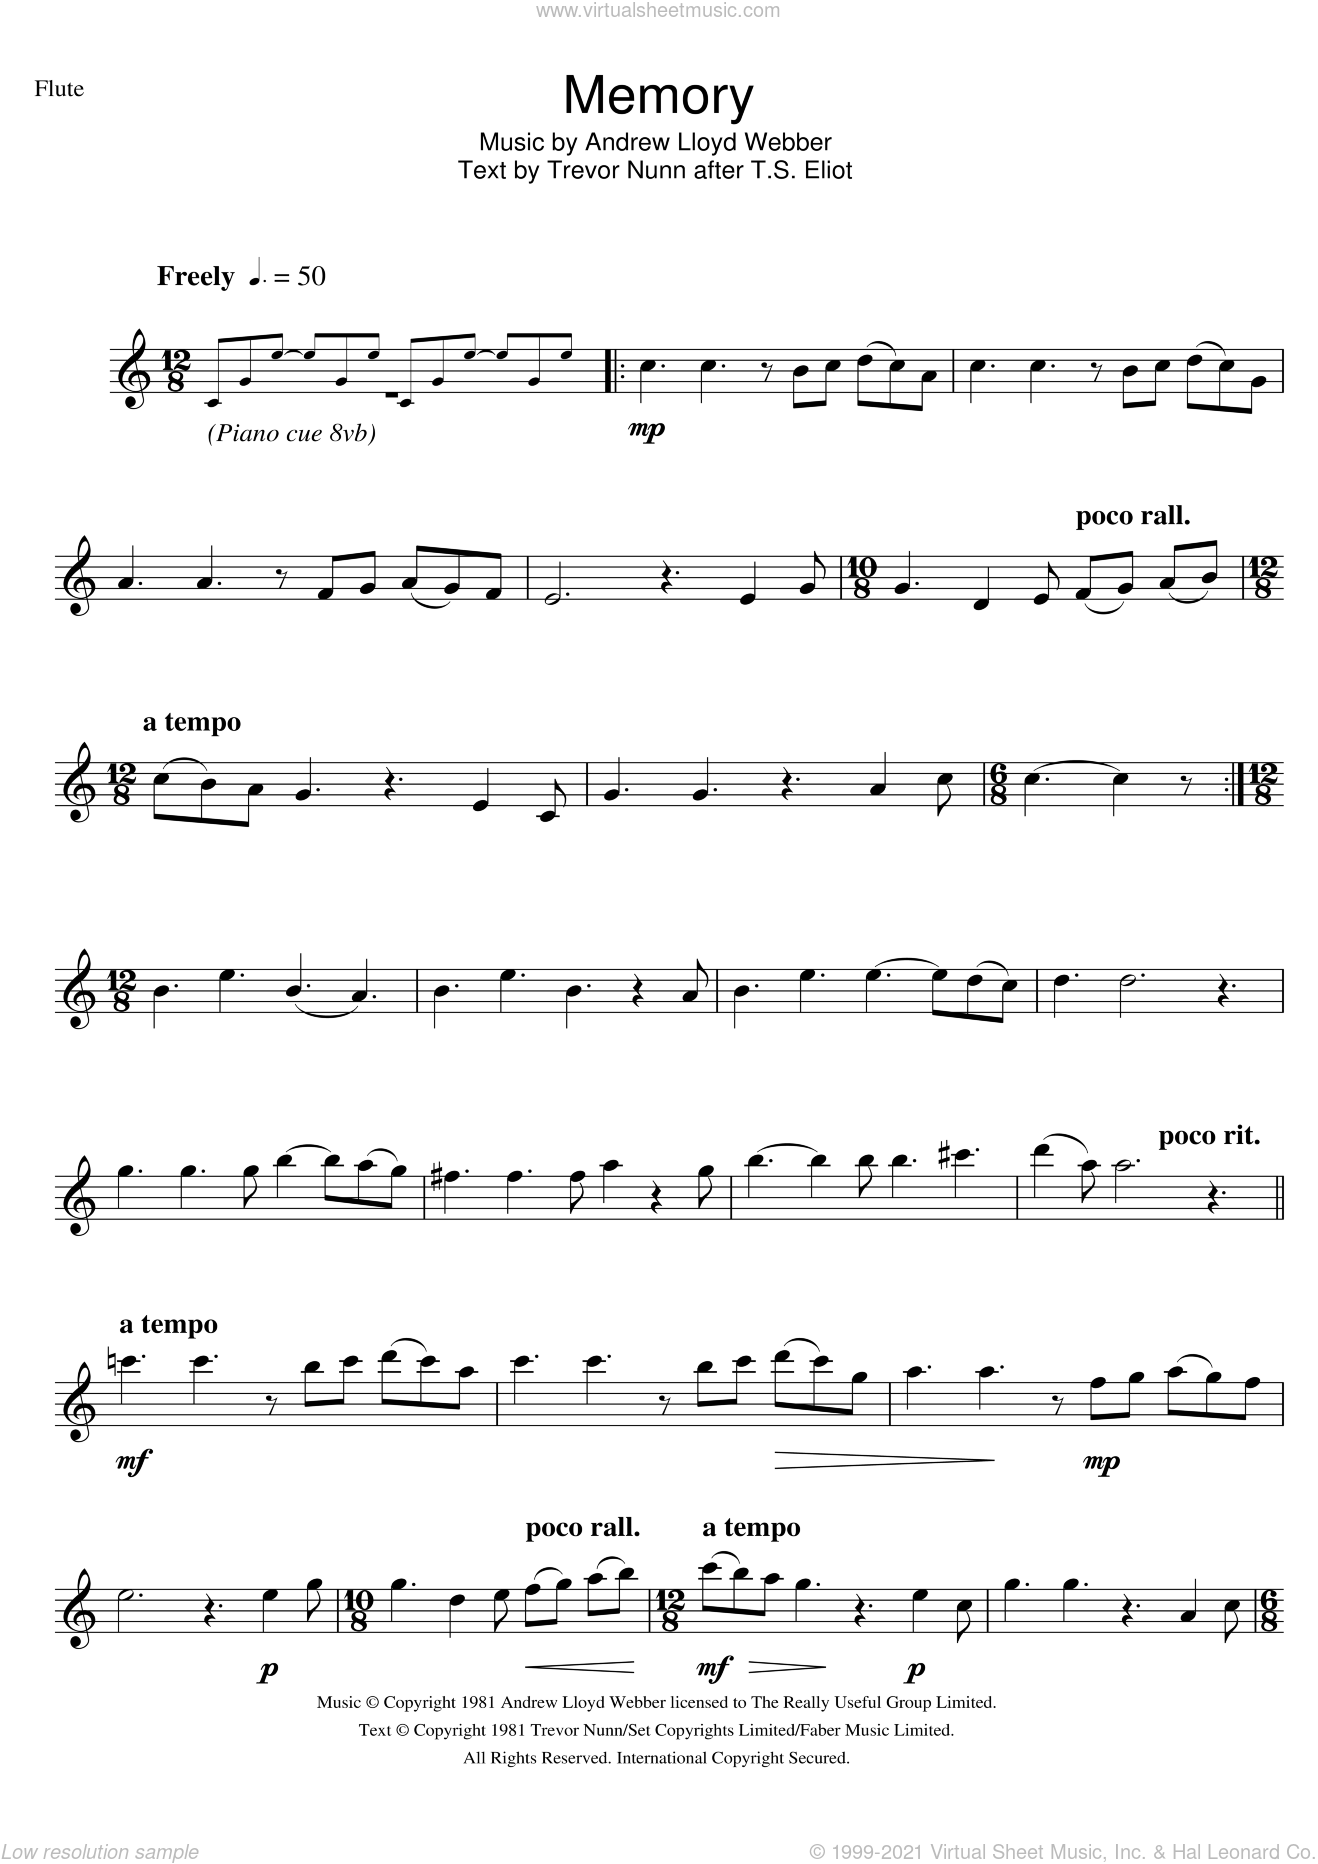 Memory (from Cats) sheet music for flute solo by Andrew Lloyd Webber and Trevor Nunn, intermediate skill level